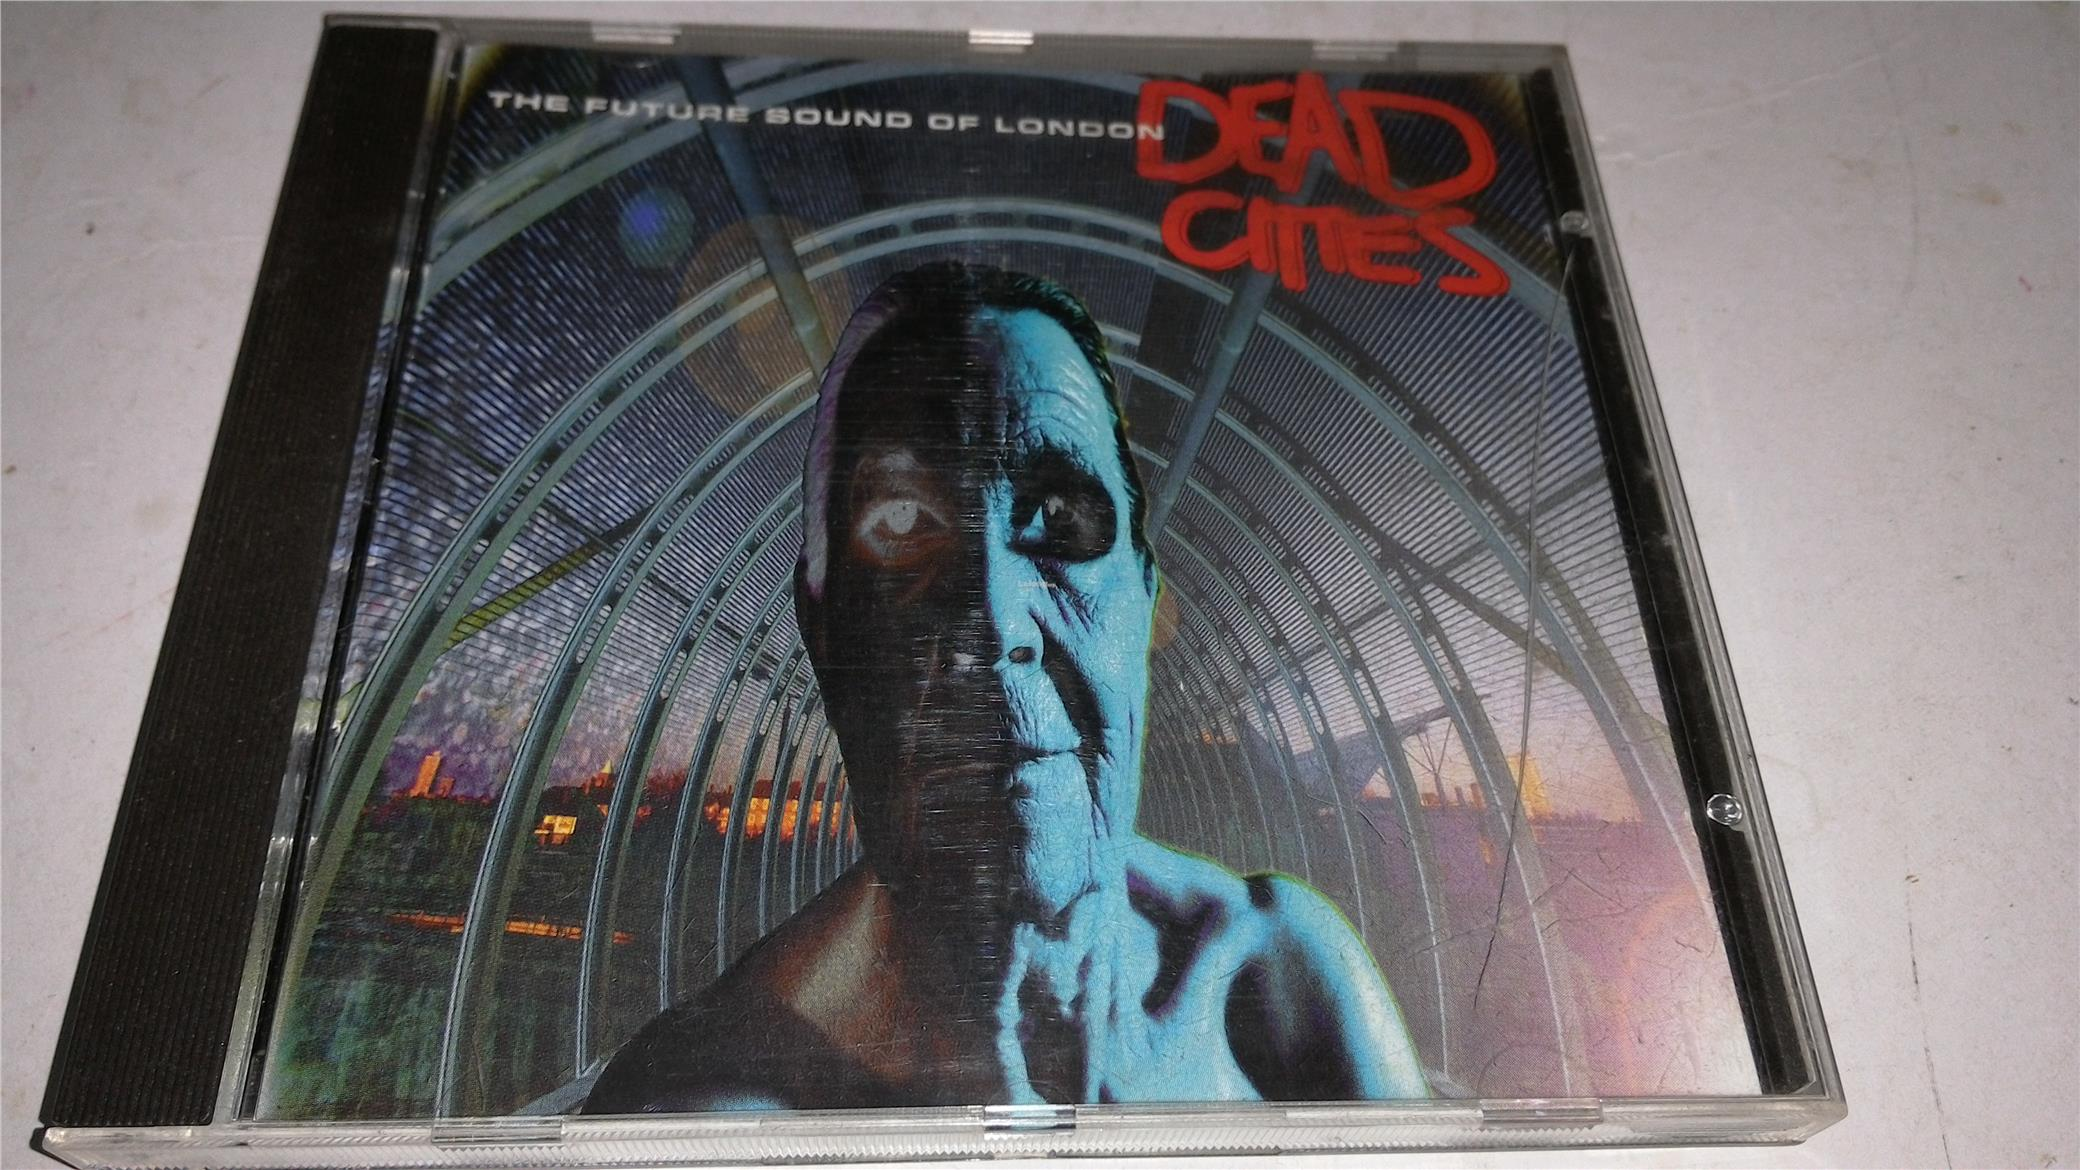 THE FUTURE SOUND OF LONDON - DEAD CITIES CD